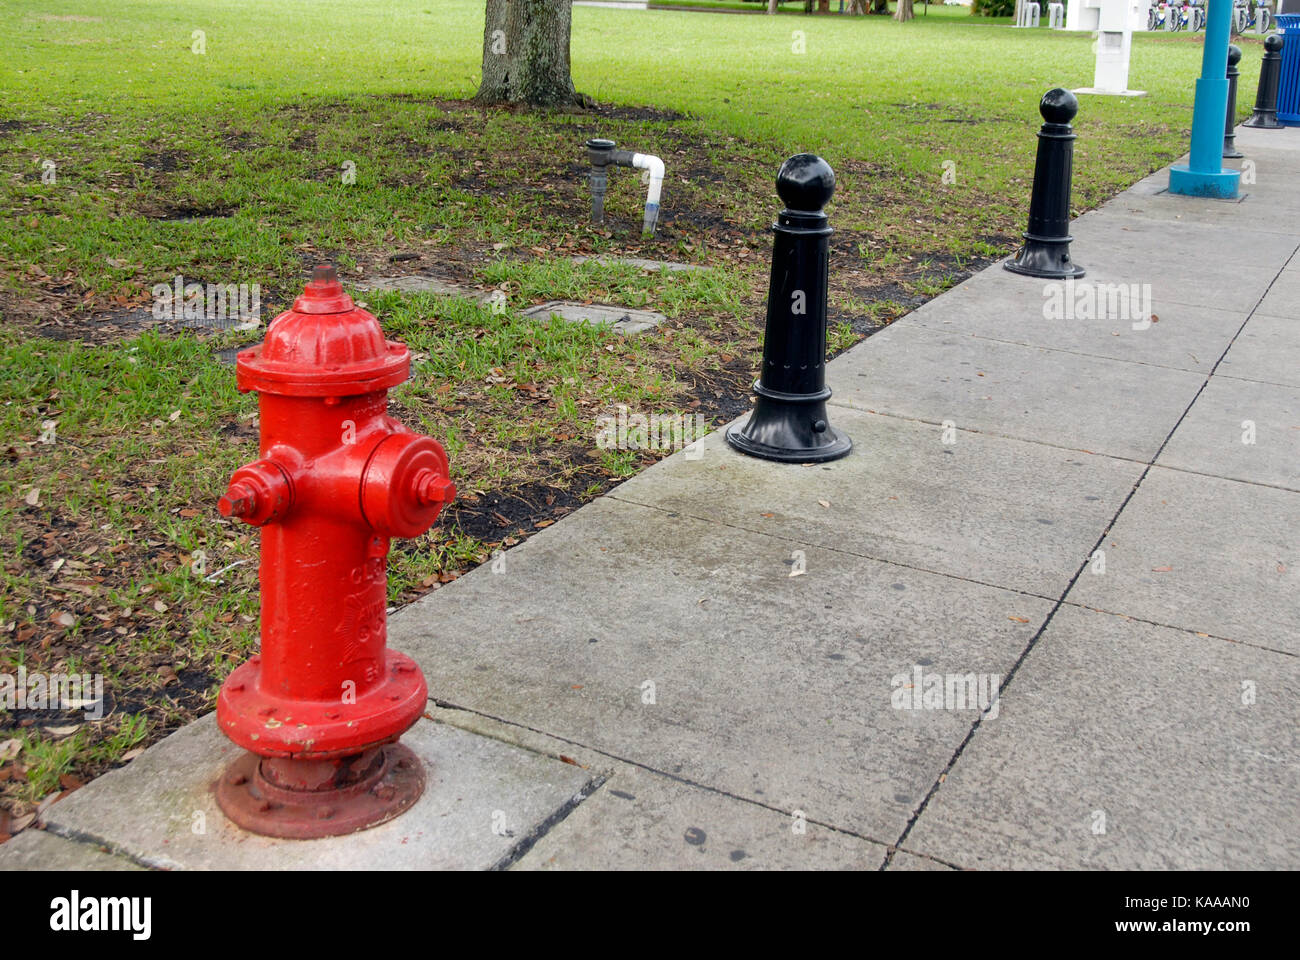 Fire hydrant and other street furniture, Fort Lauderdale, Florida, USA - Stock Image